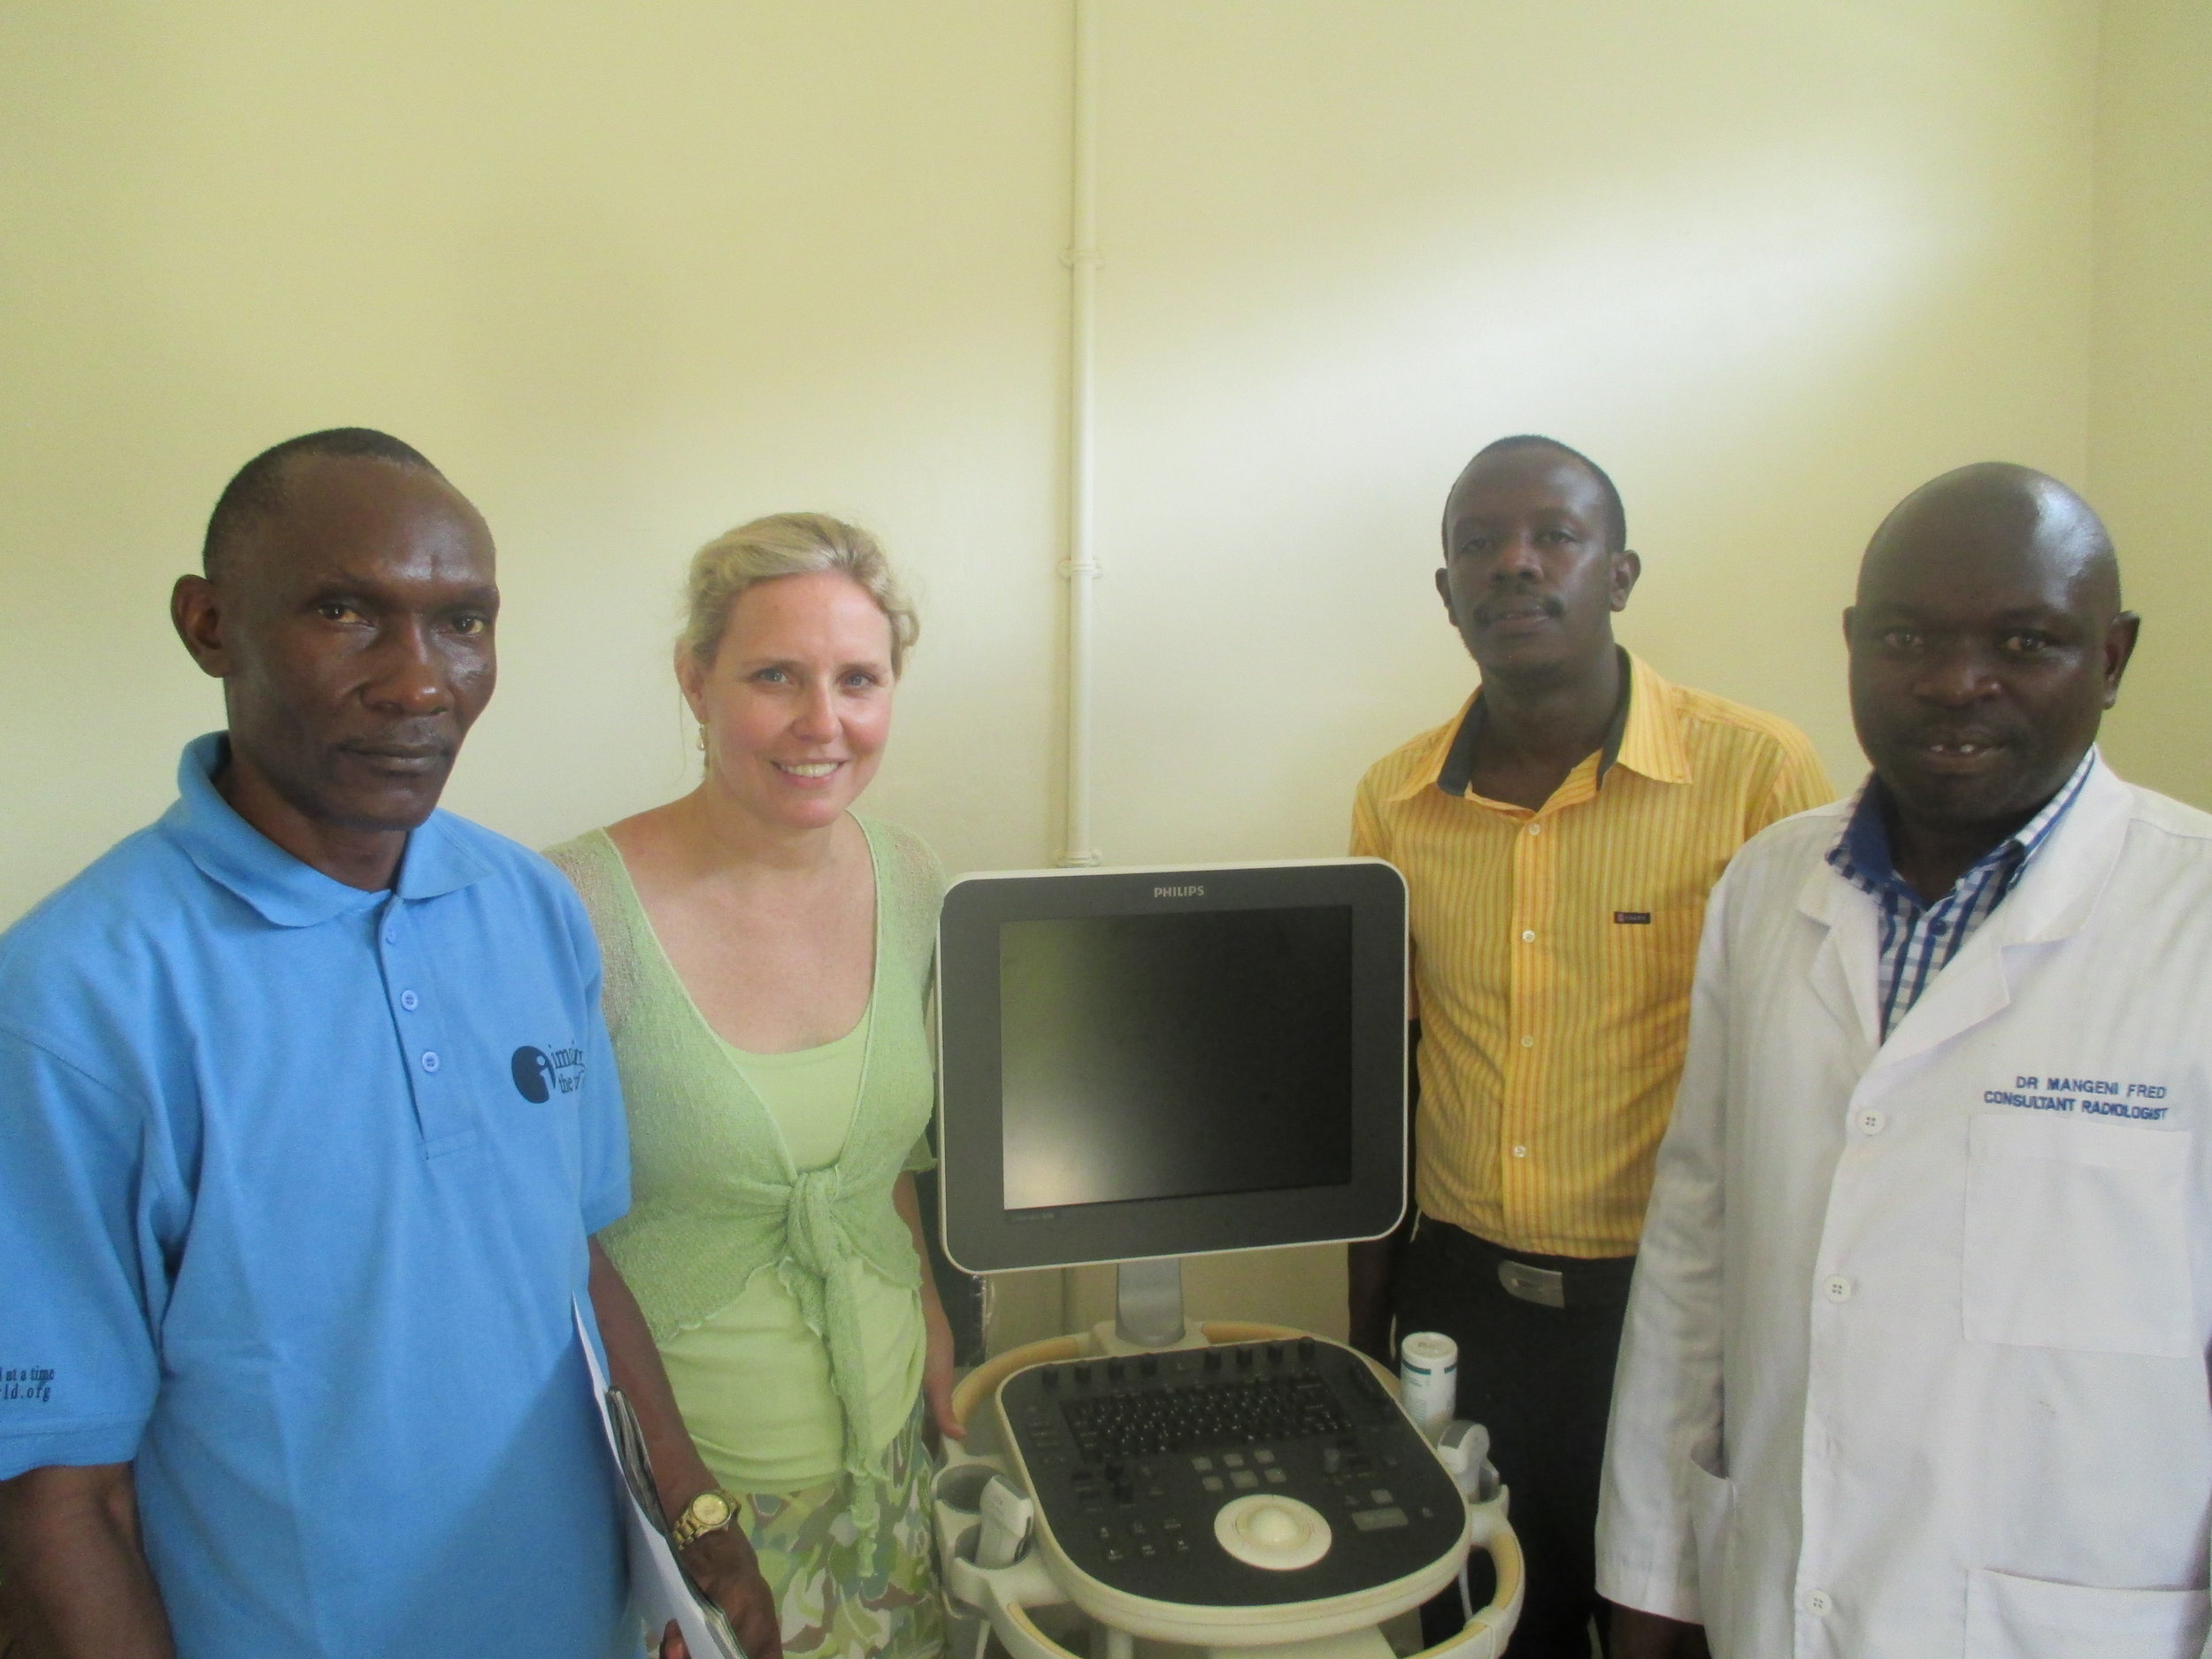 A new ultrasound machine for Mubende Hospital